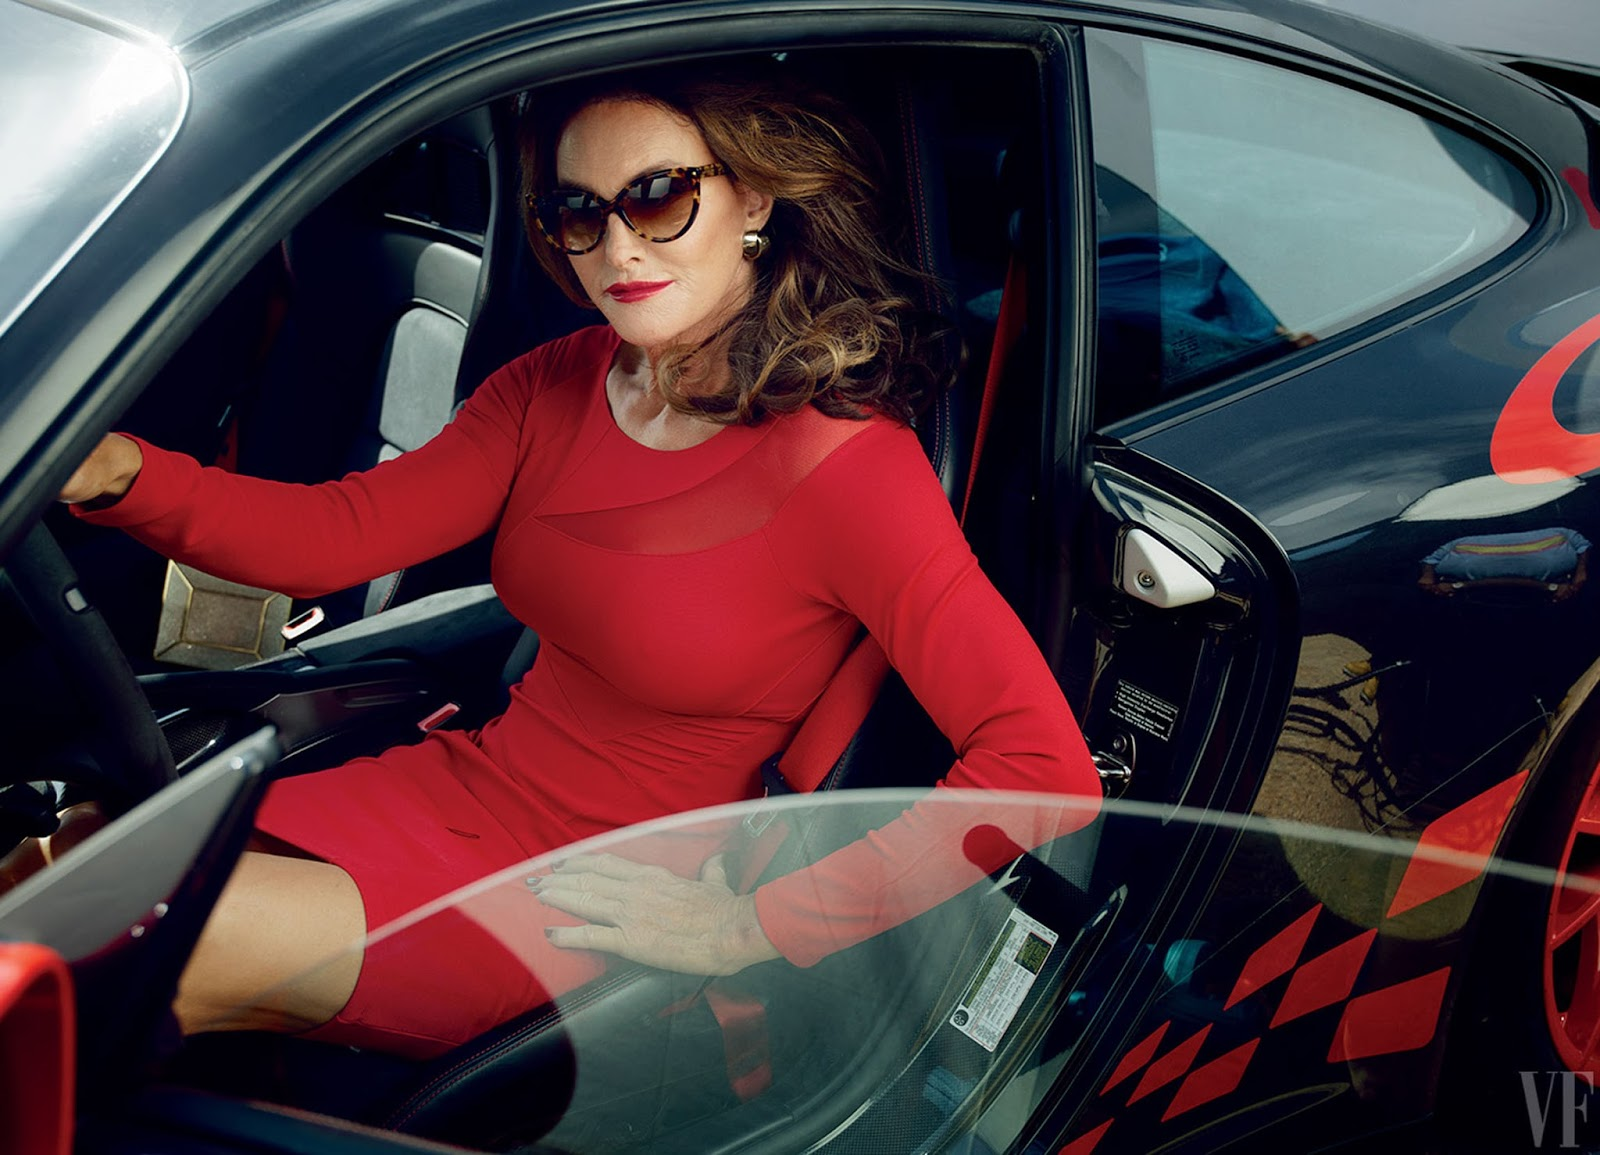 Eniwhere Fashion - Caitlyn Jenner on News On Fashion